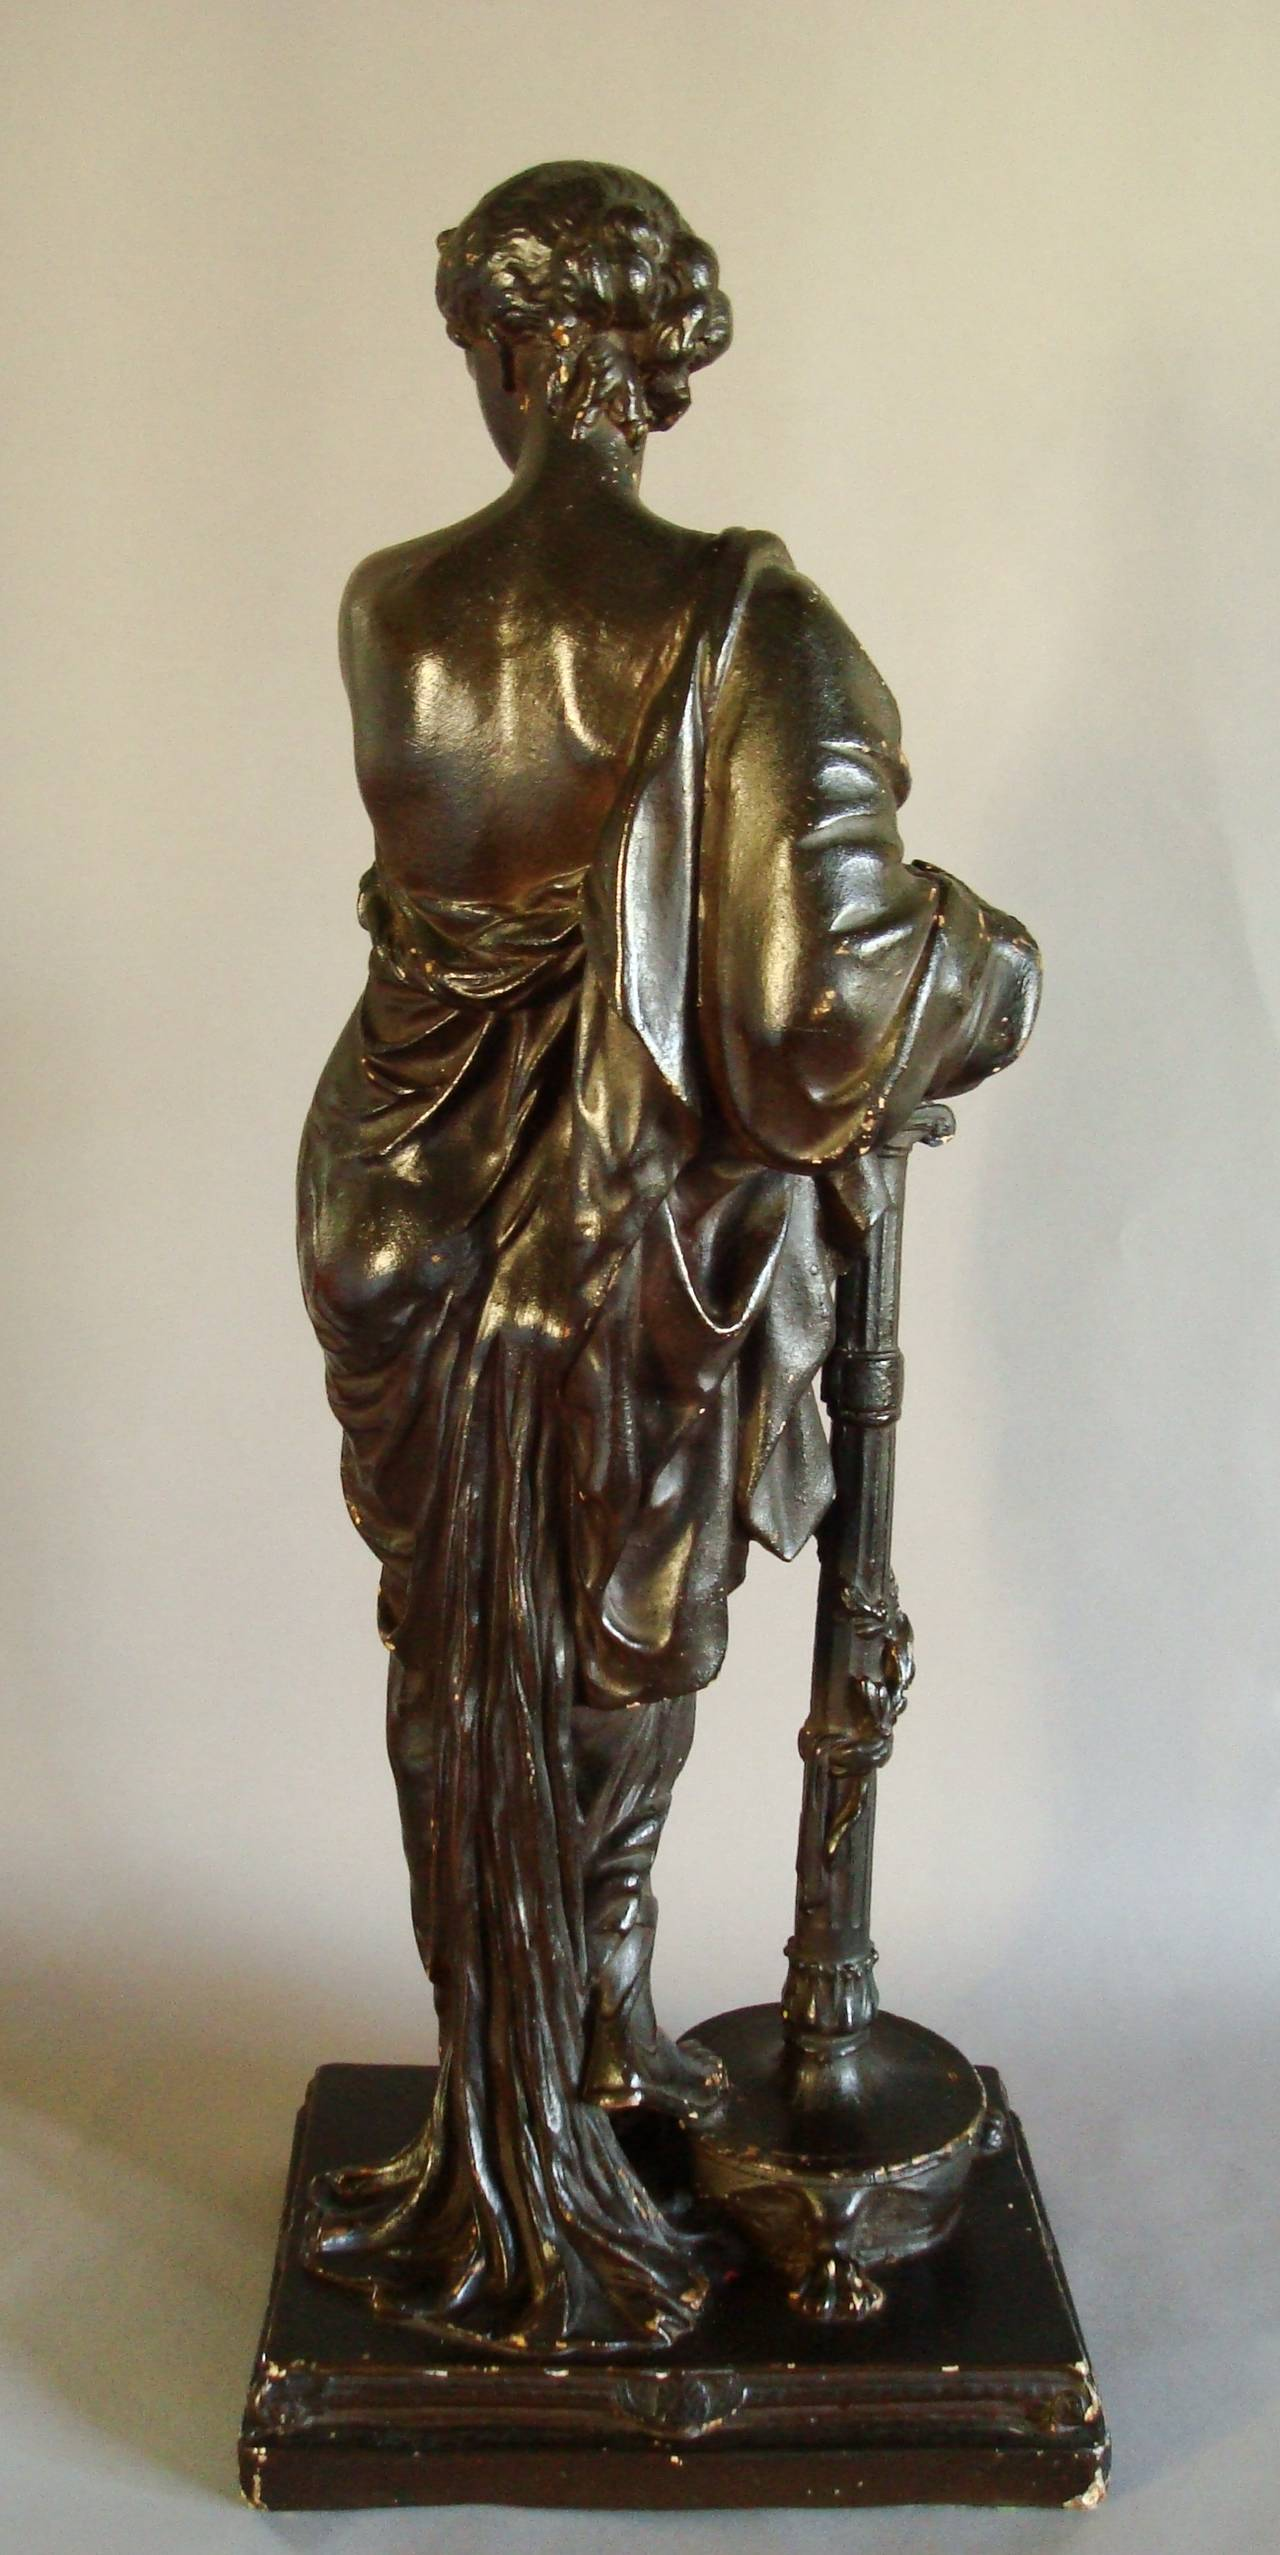 Regency Bronzed Sculpture Of A Classical Figure For Sale